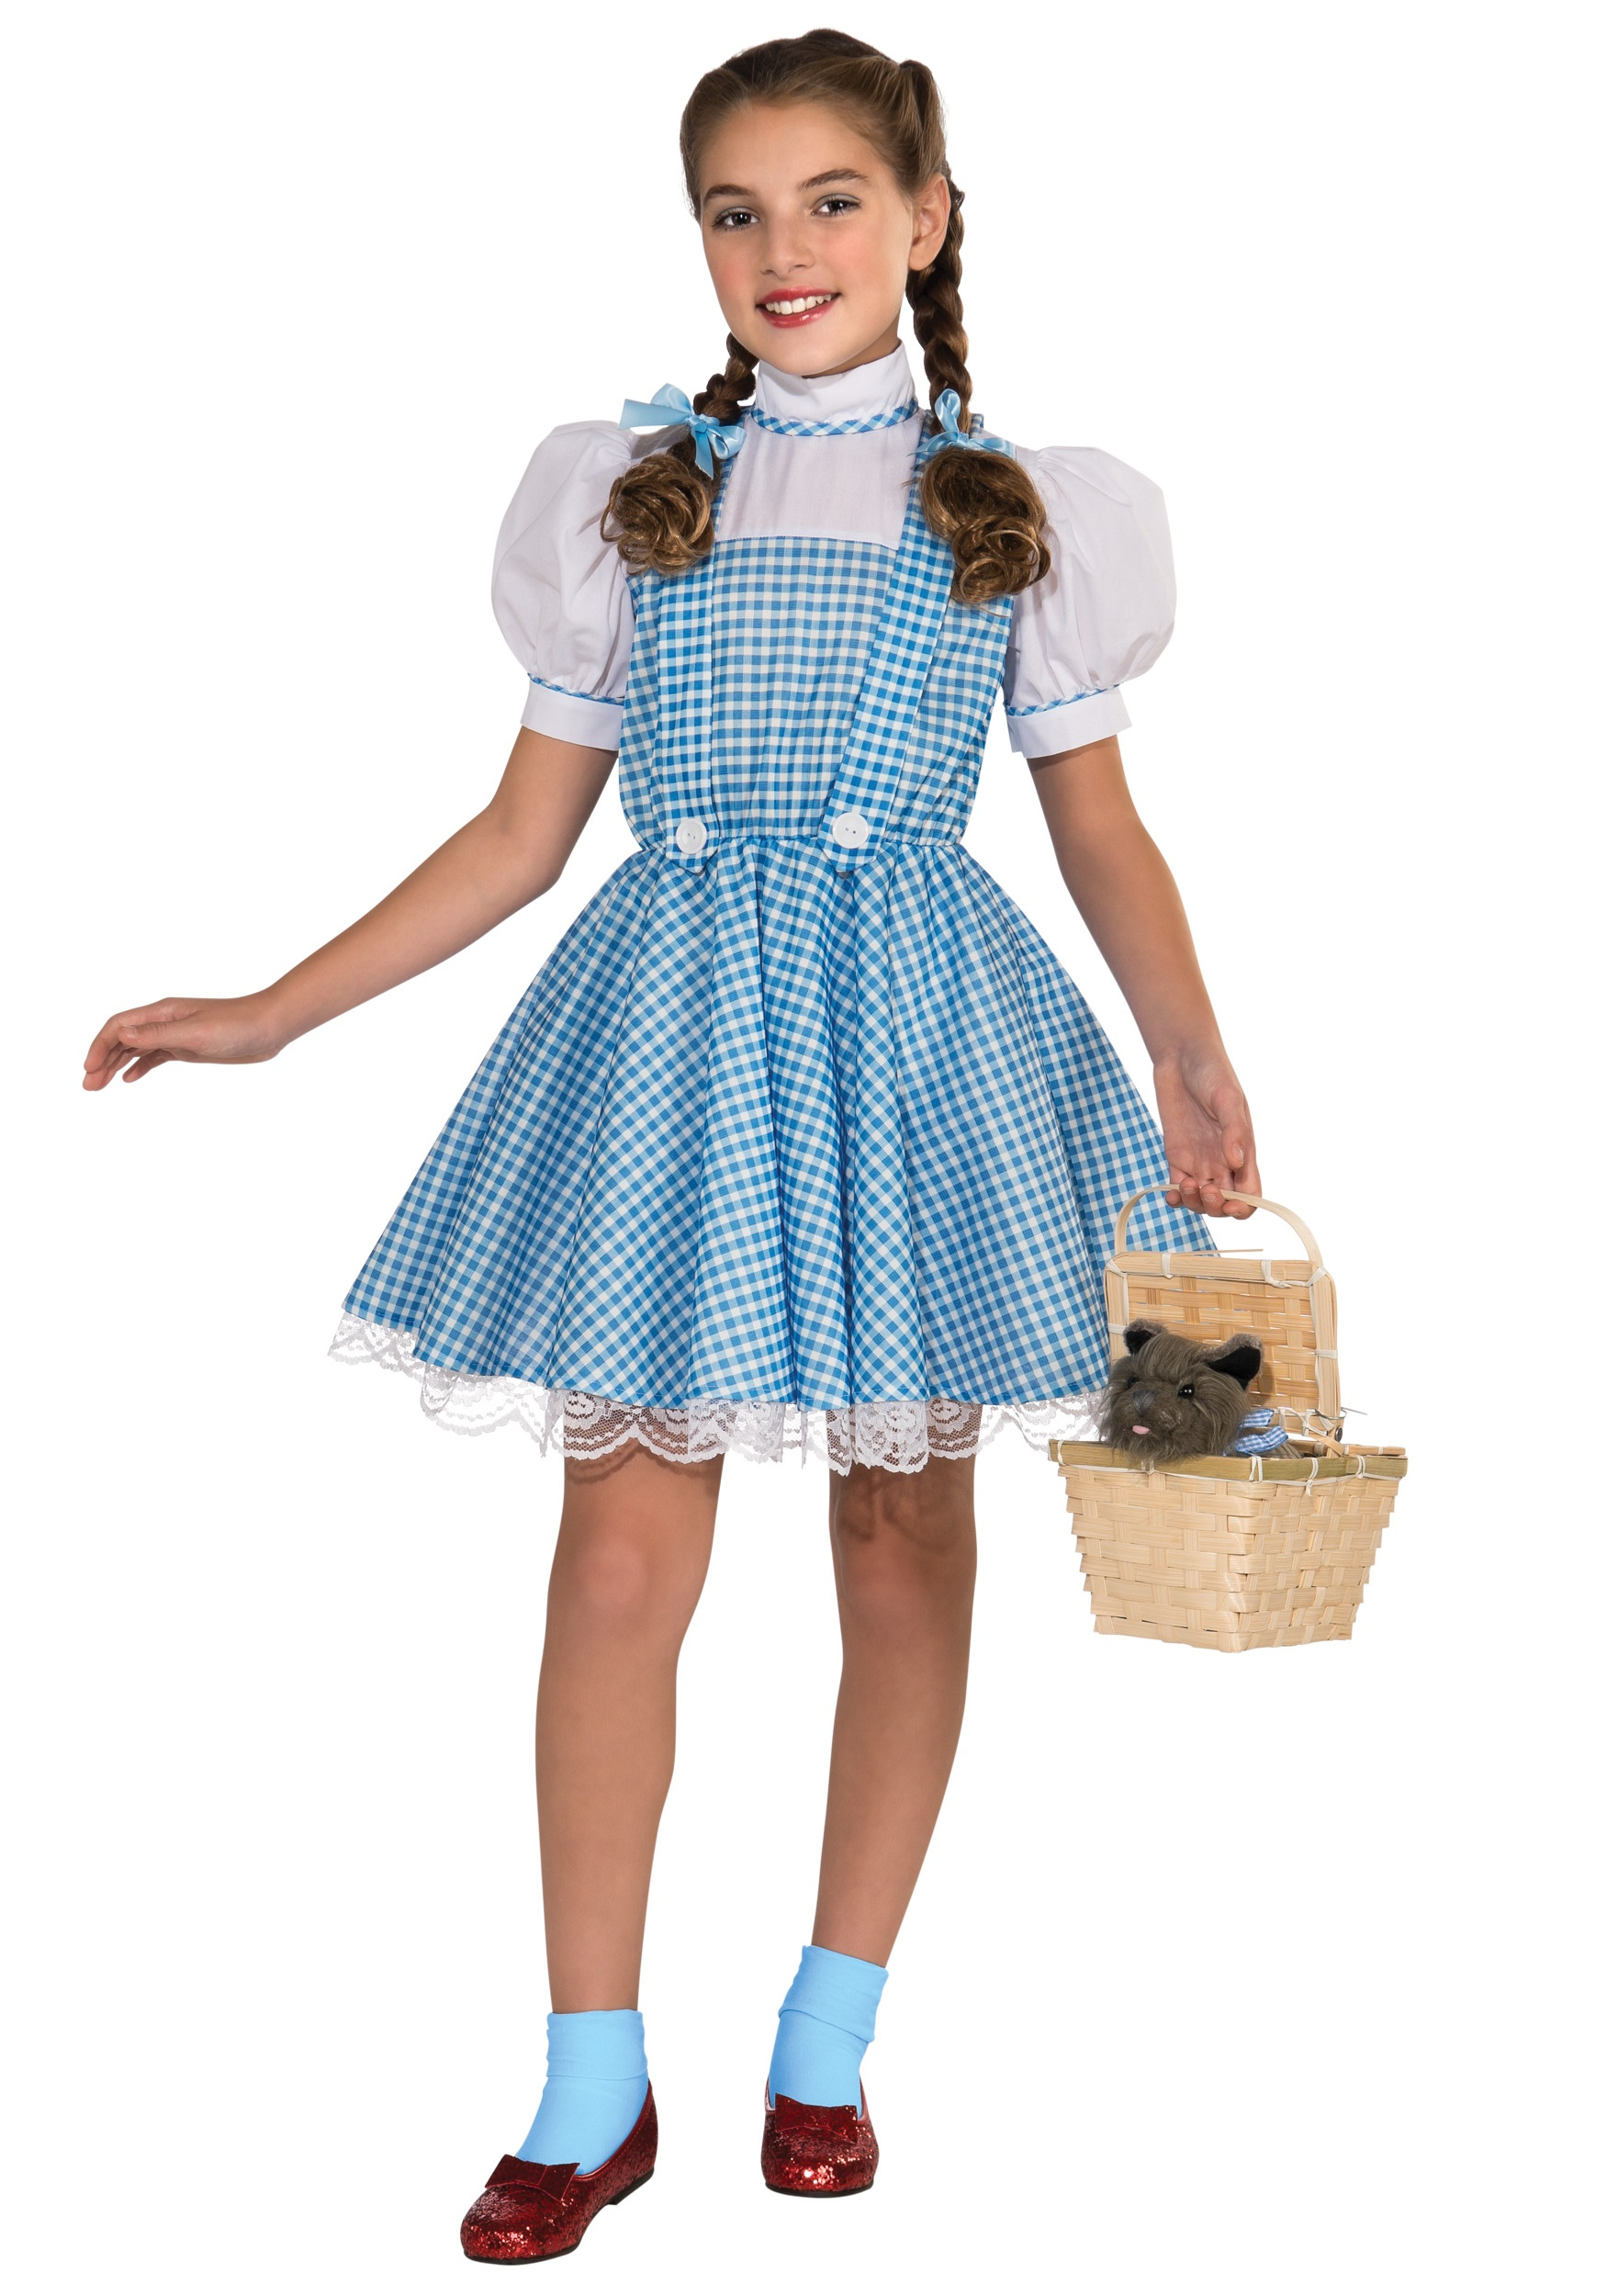 Halloween Costumes For Girls Age 11 13 : halloween, costumes, girls, Deluxe, Dorothy, Costume